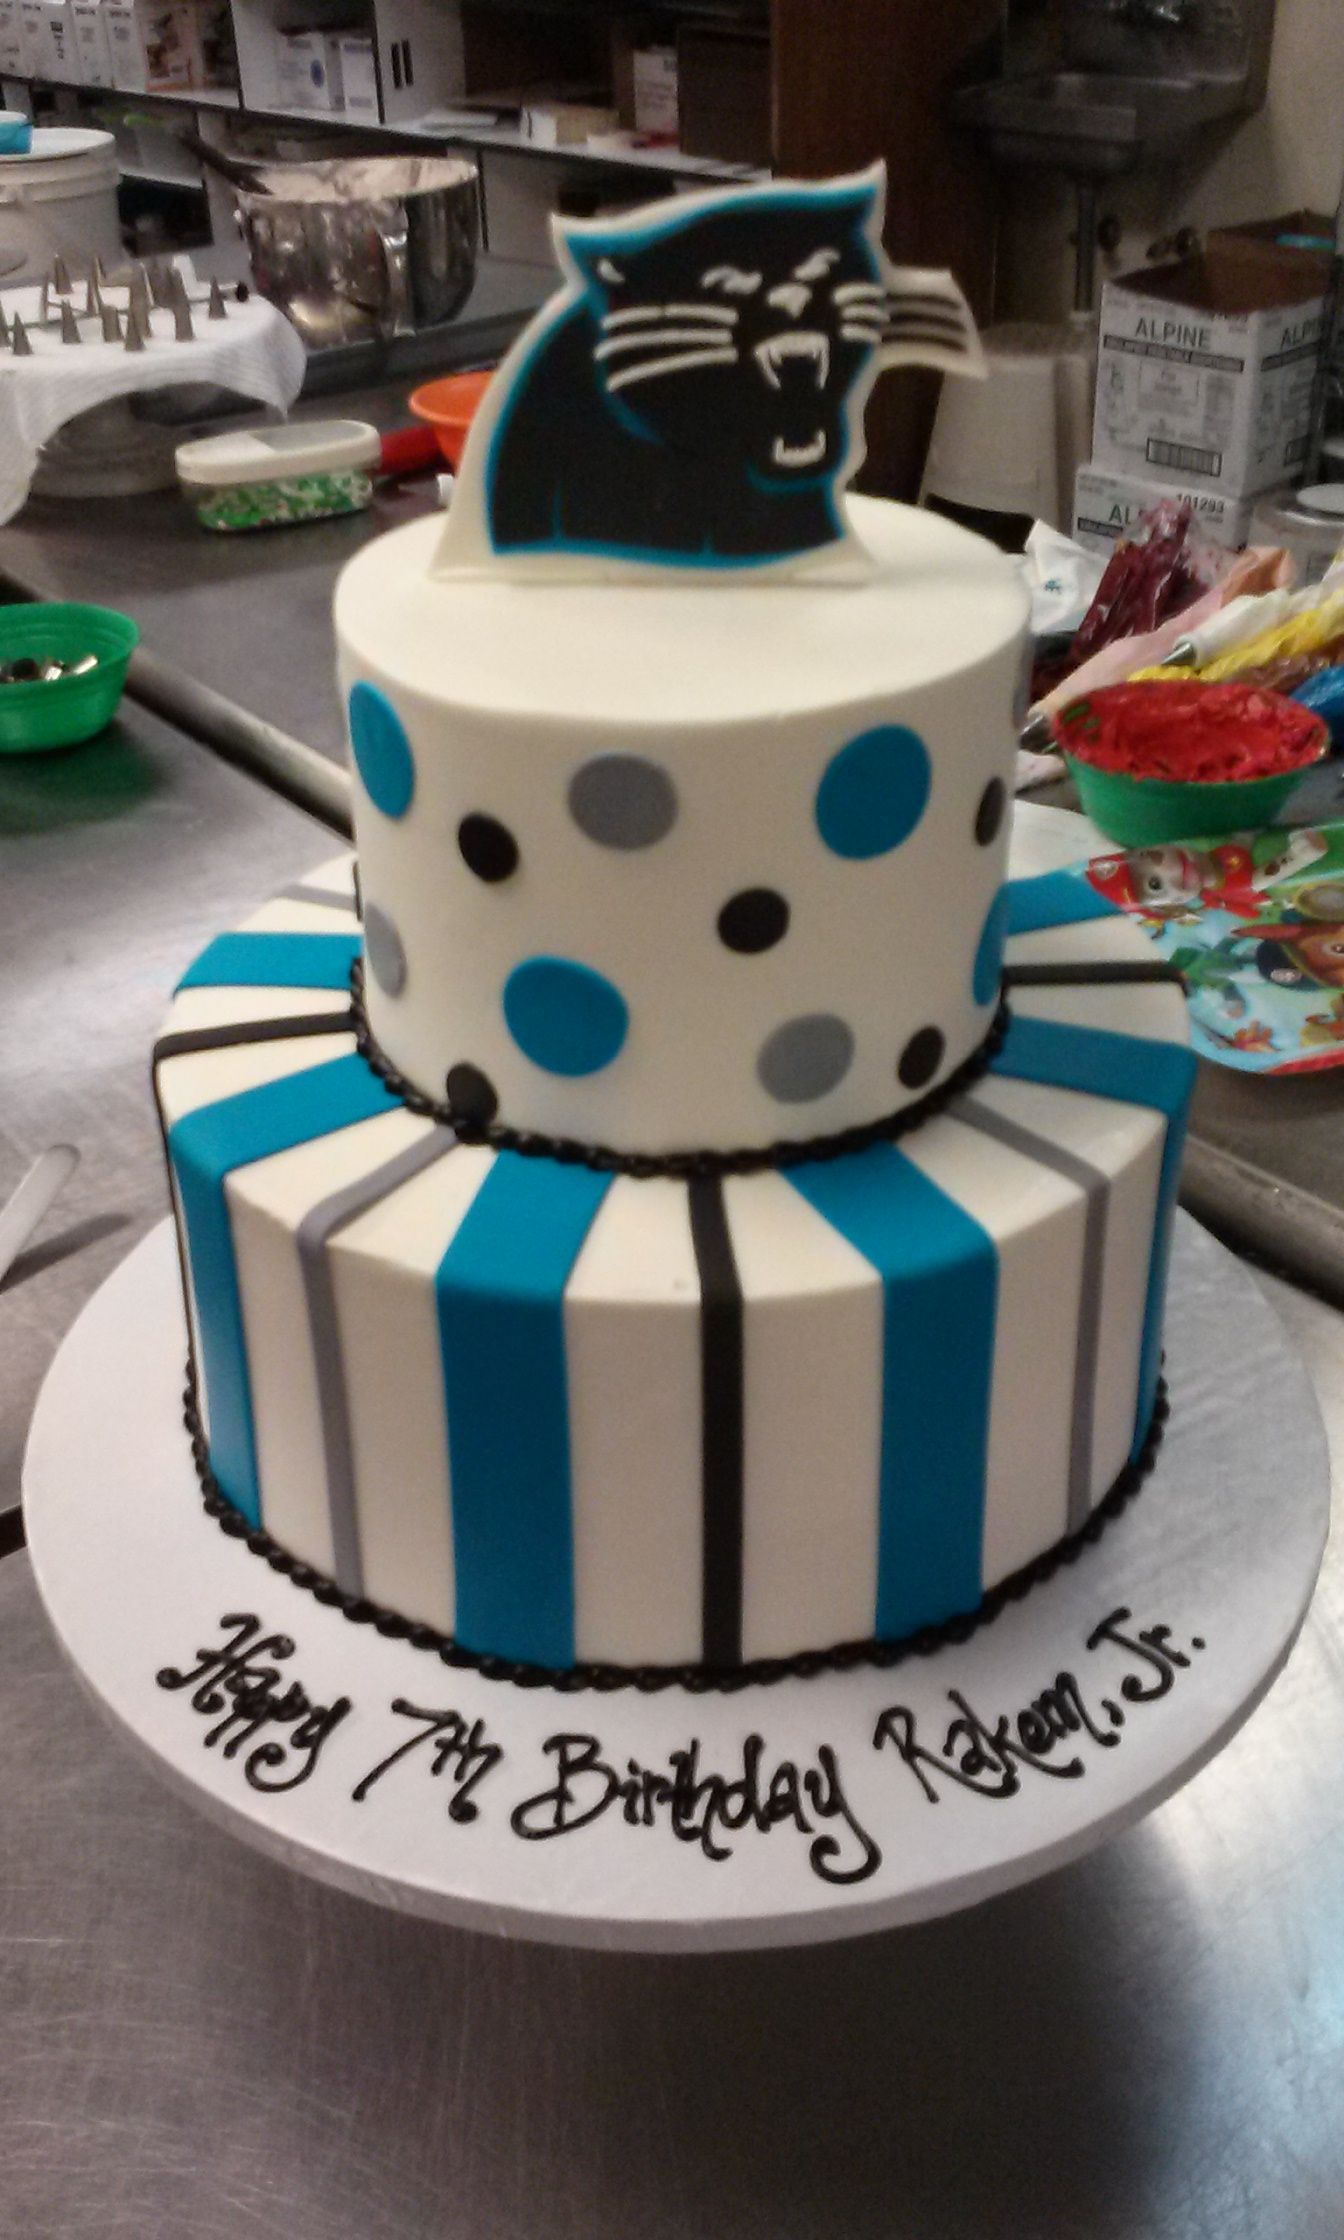 a carolina panthers inspired two tier cake with fondant panther